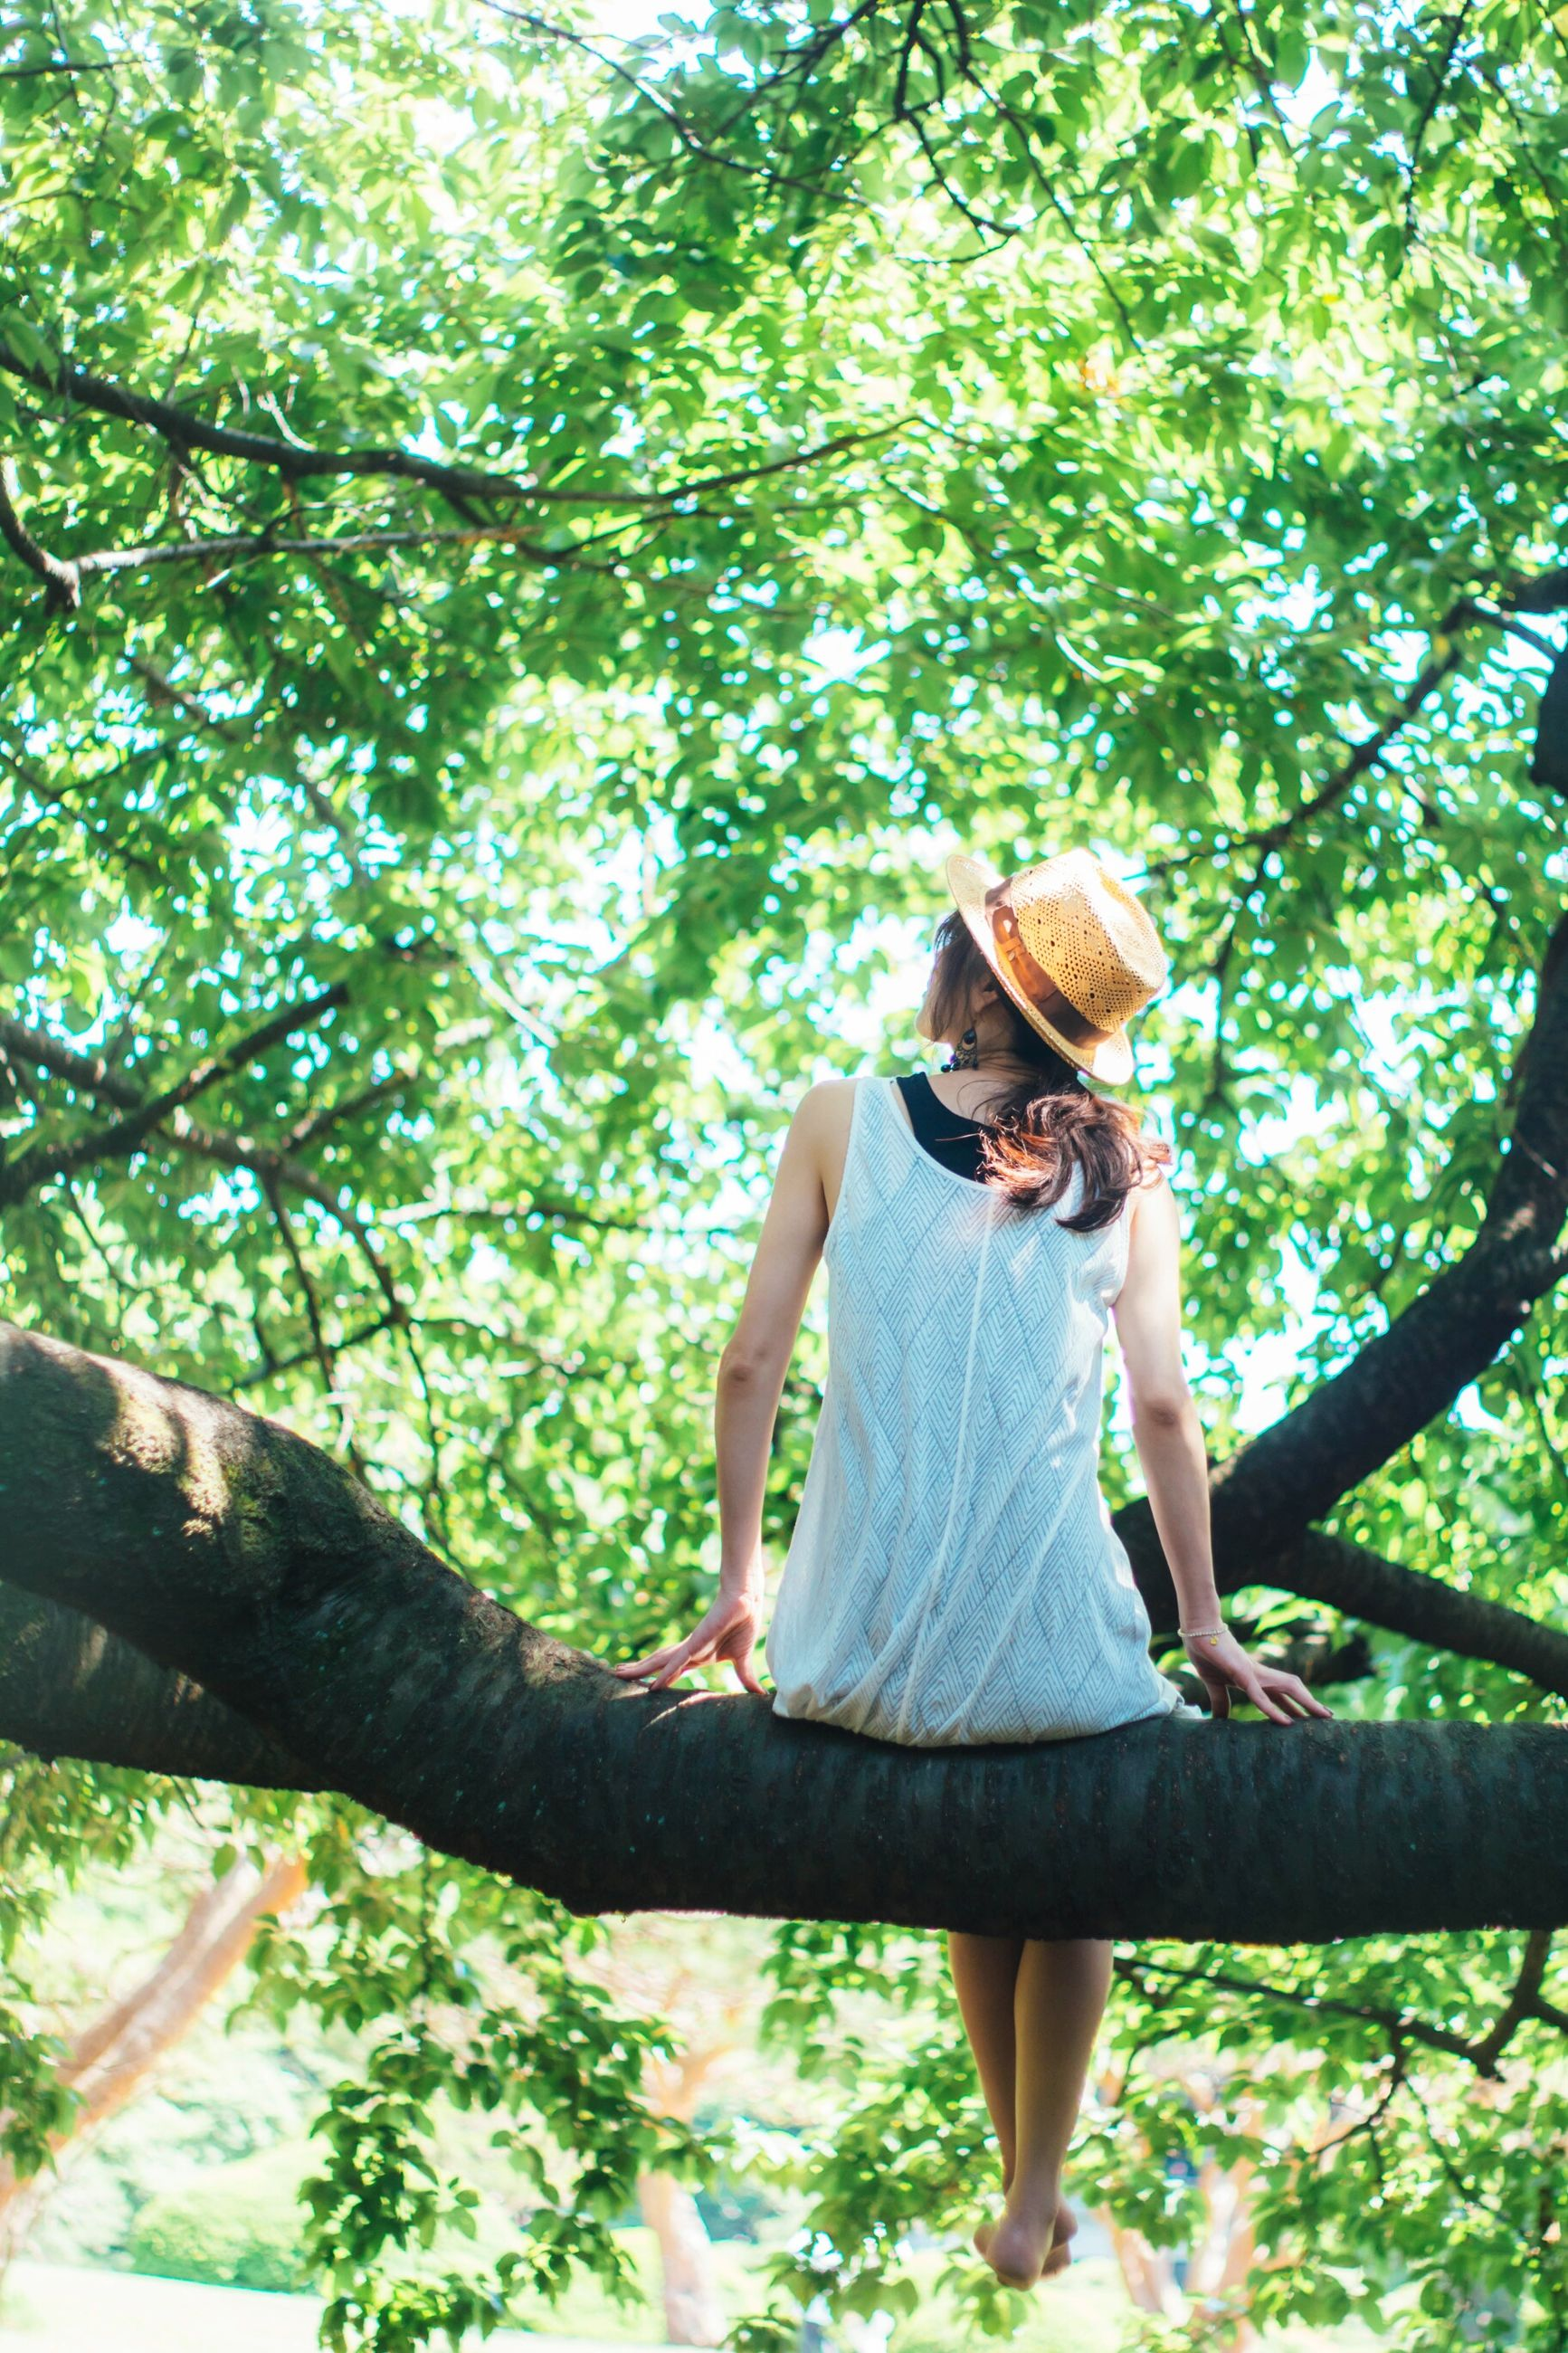 tree, hat, casual clothing, one person, sun hat, day, outdoors, leisure activity, nature, full length, front view, real people, standing, branch, summer, lifestyles, women, growth, beauty in nature, young women, young adult, one woman only, people, adult, adults only